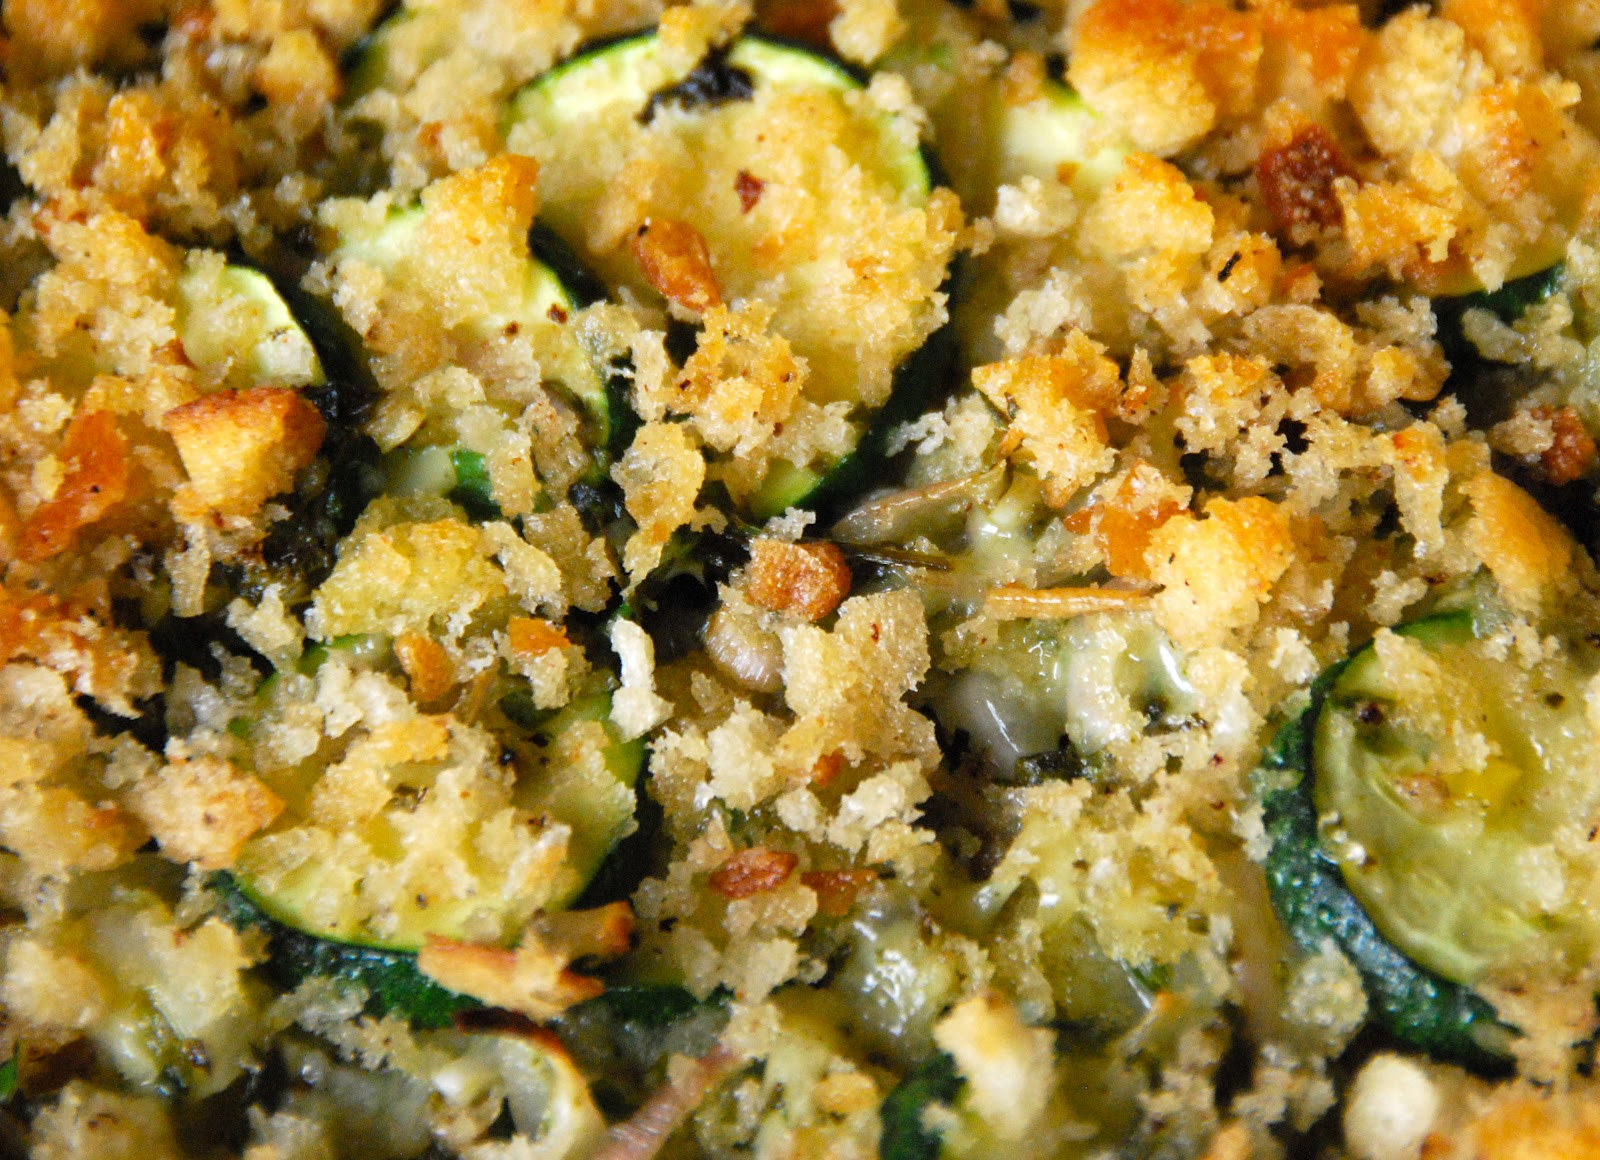 Cooking with Larue: Summer Squash Gratin with Green Salsa & Gruyere